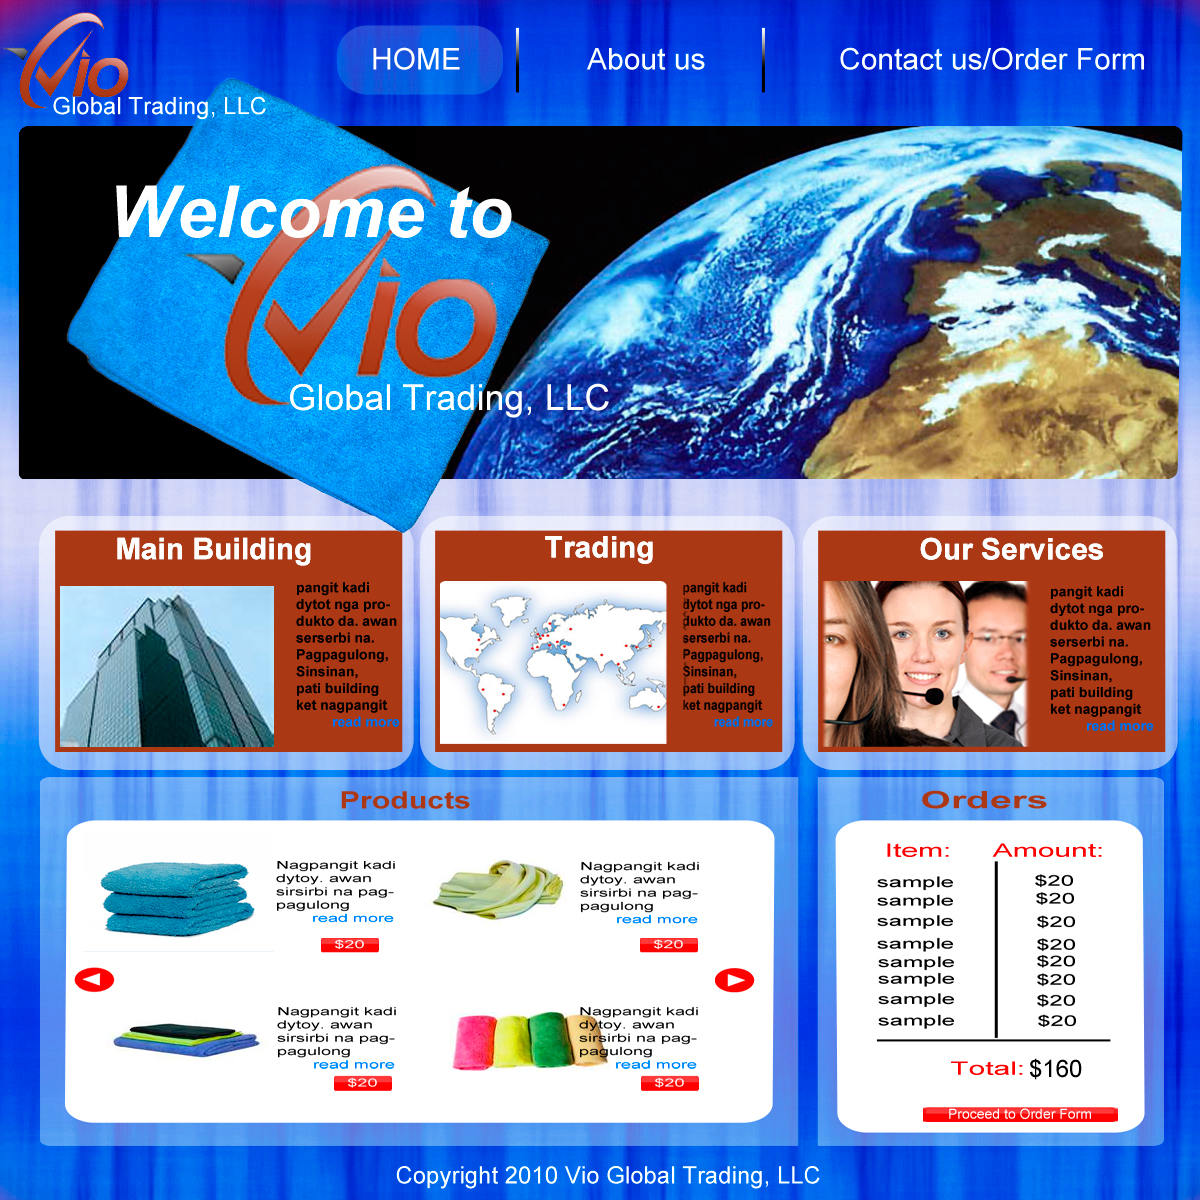 Web Page Design by devil_art213 - Entry No. 46 in the Web Page Design Contest vioglobaltrading.com.